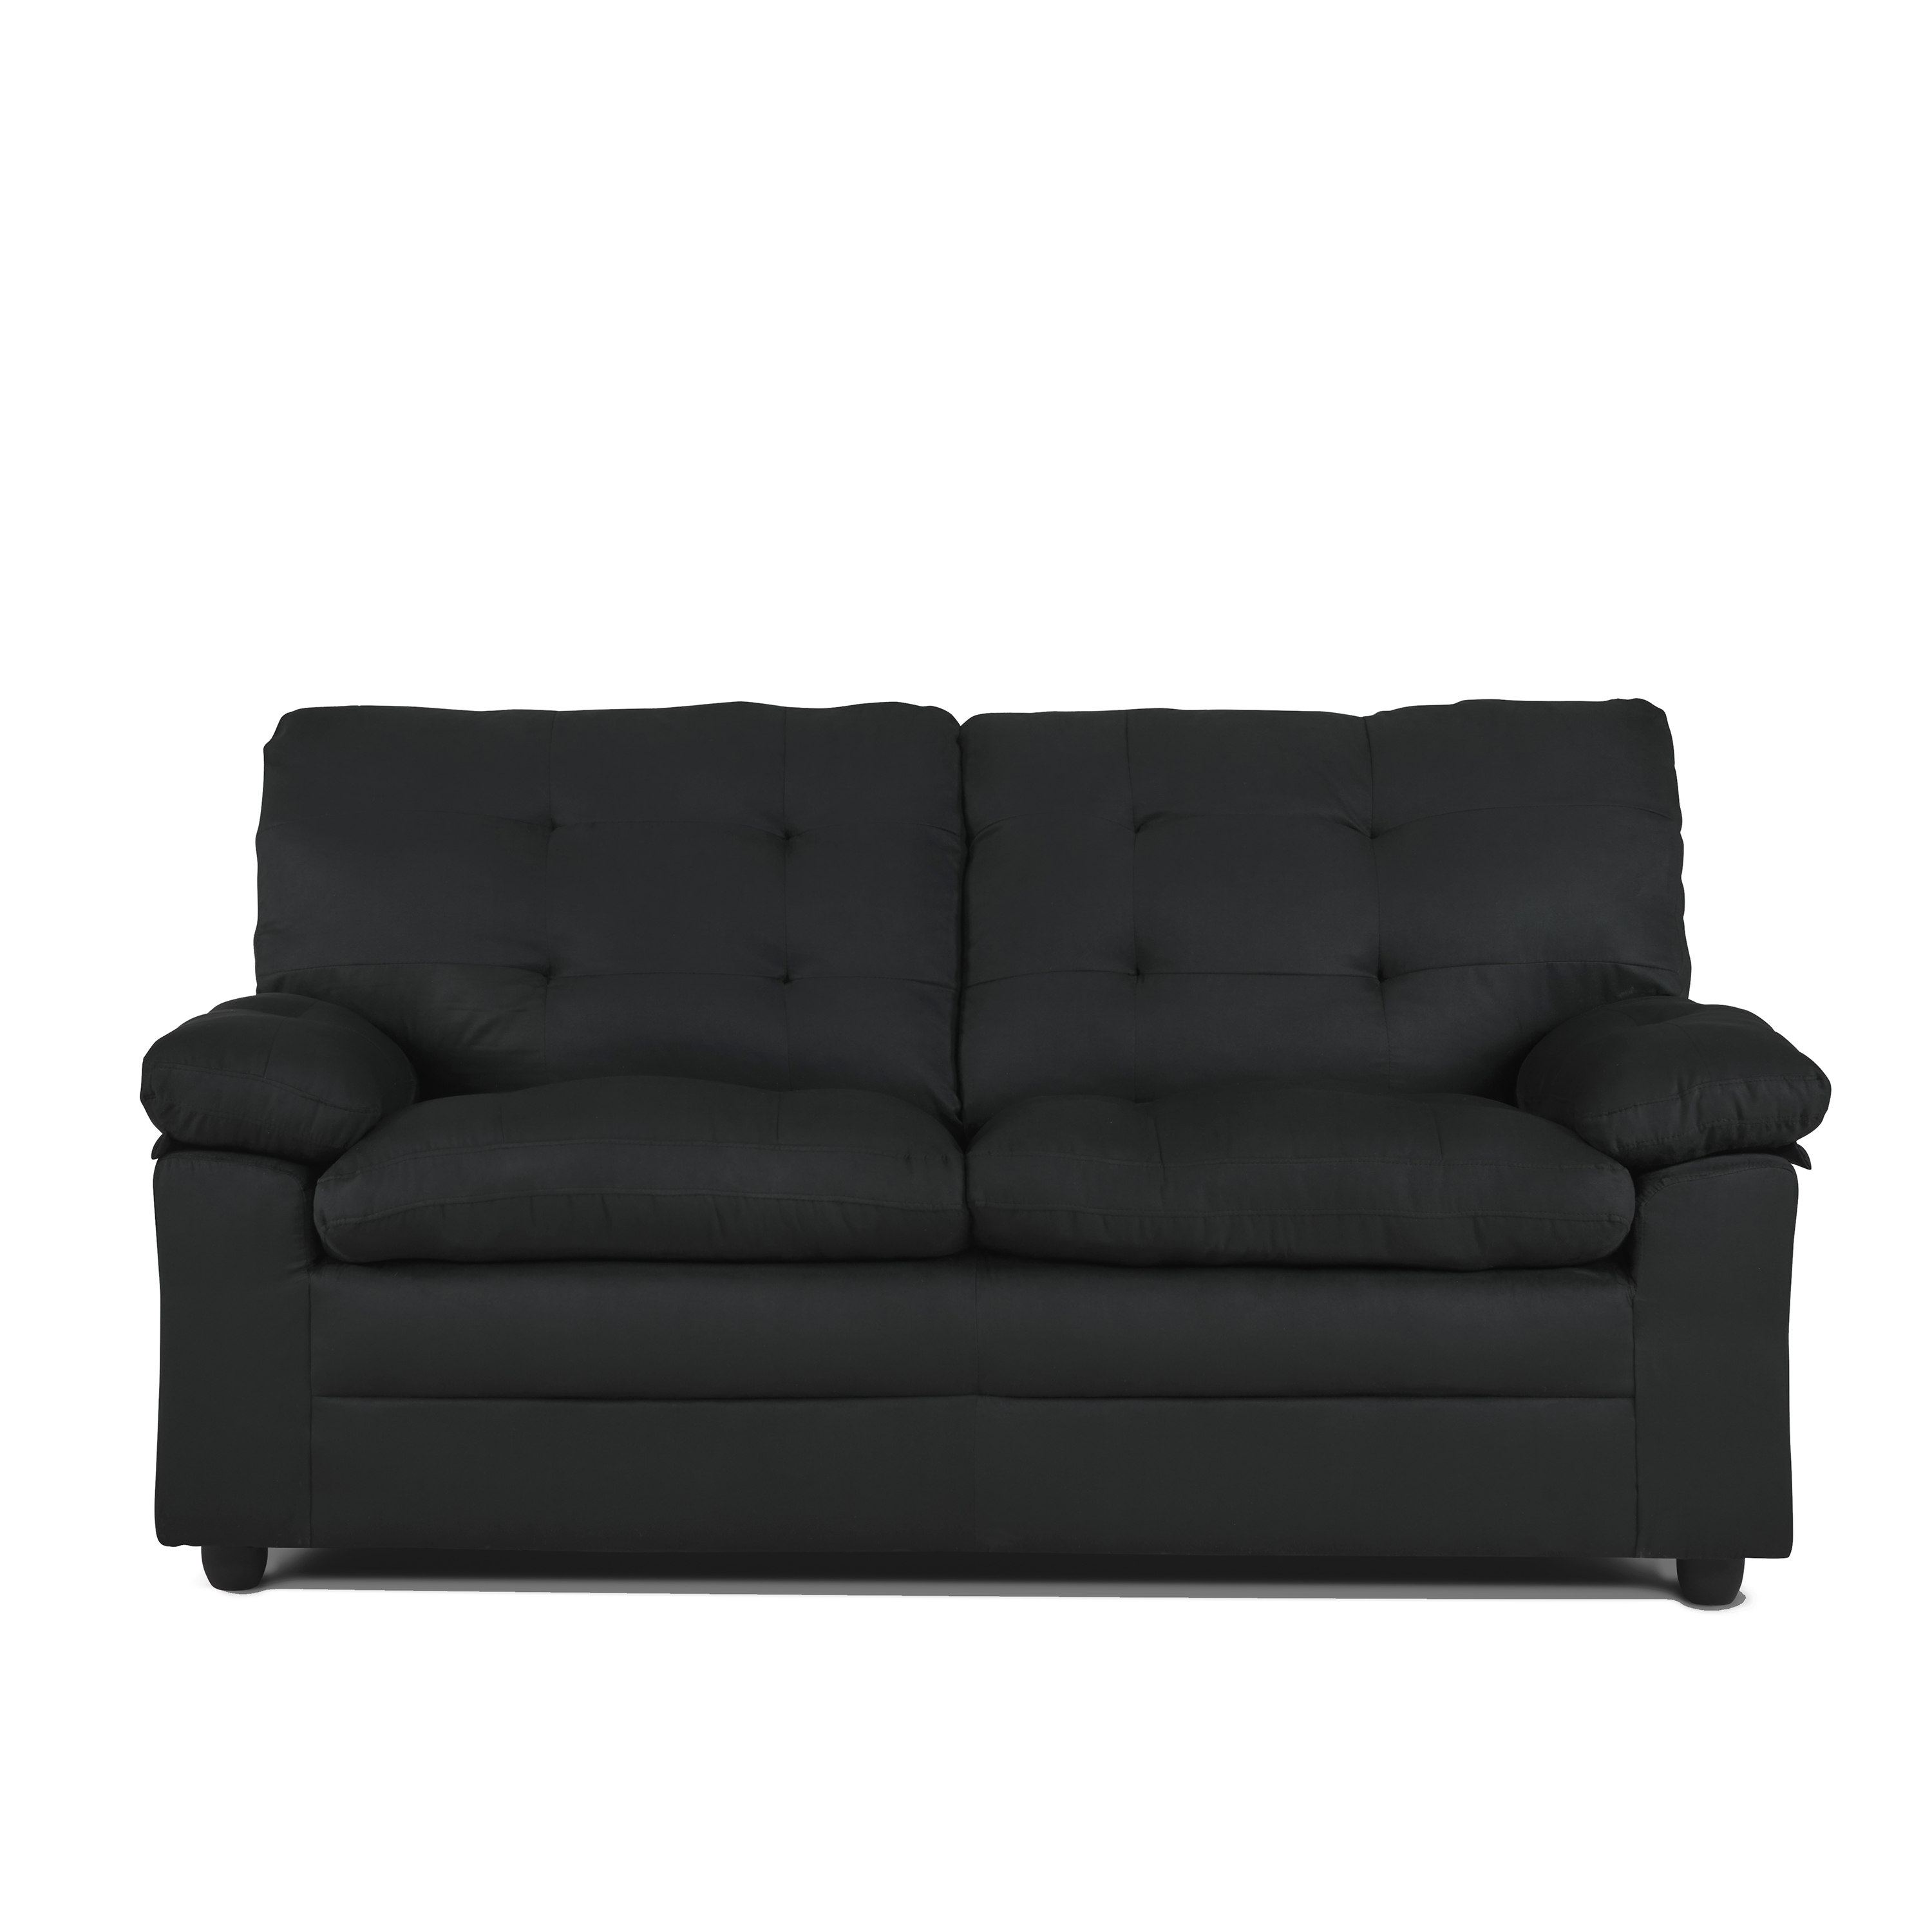 Mainstays Buchannan Upholstered Apartment Sofa, Black